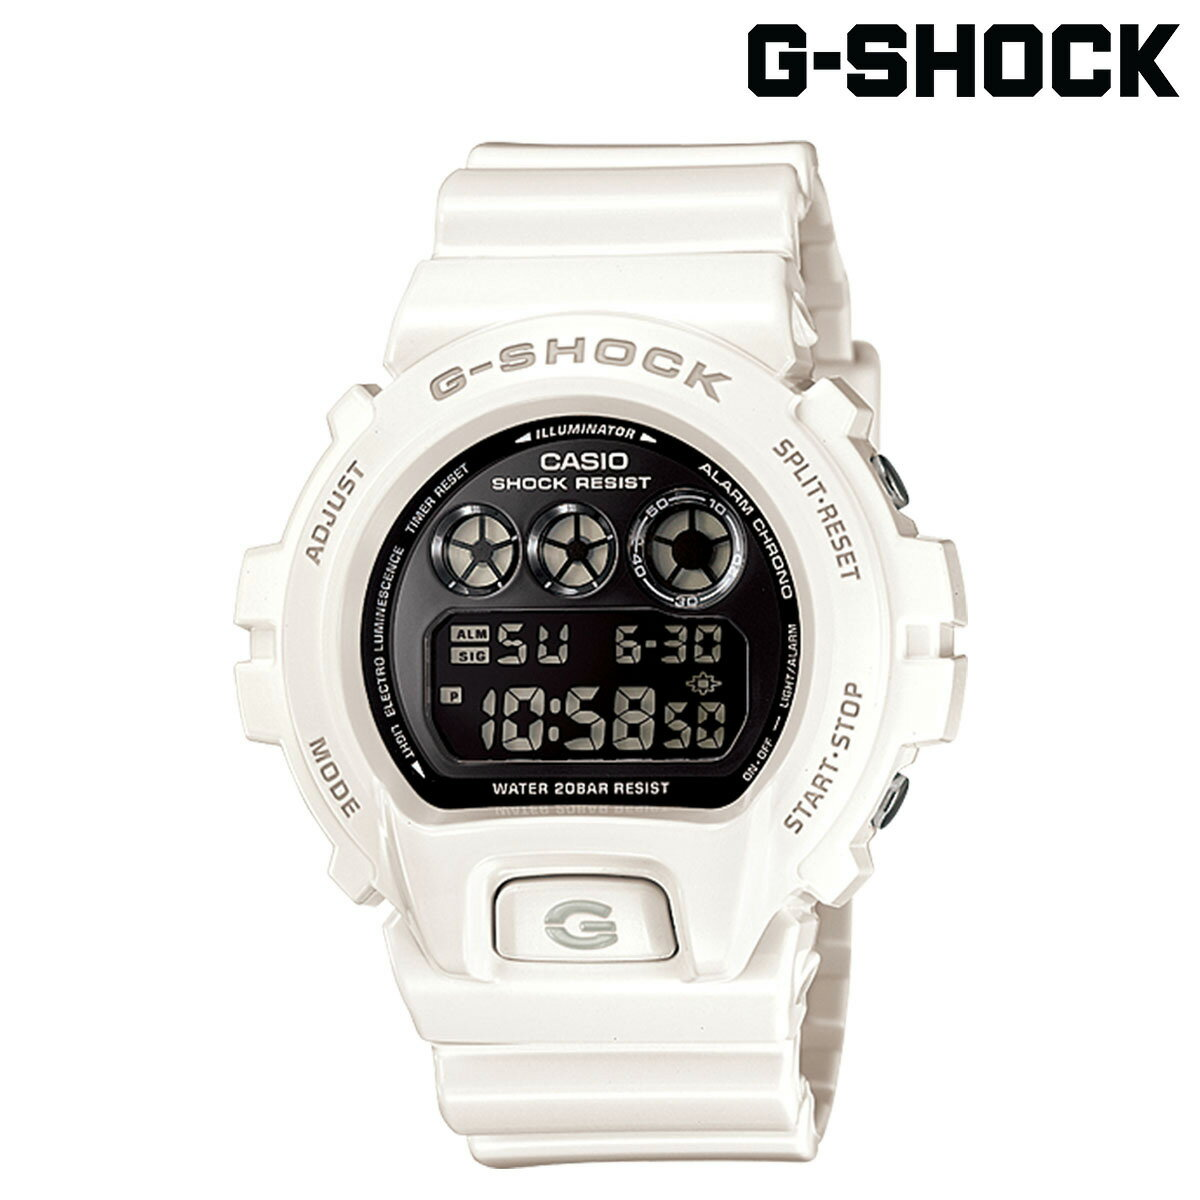 G-SHOCK DW-6900NB-7JF